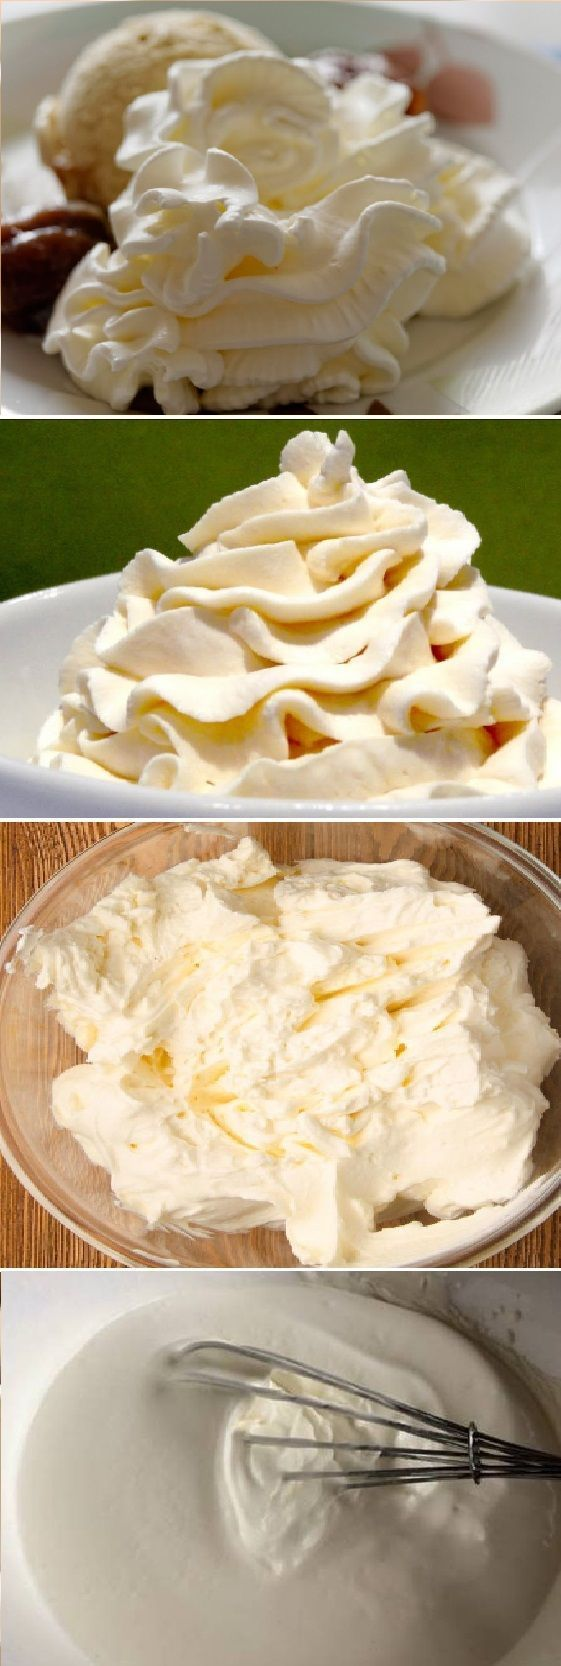 Receta De Crema Chantilly Casera Chantilly Para Decorar Pasteles